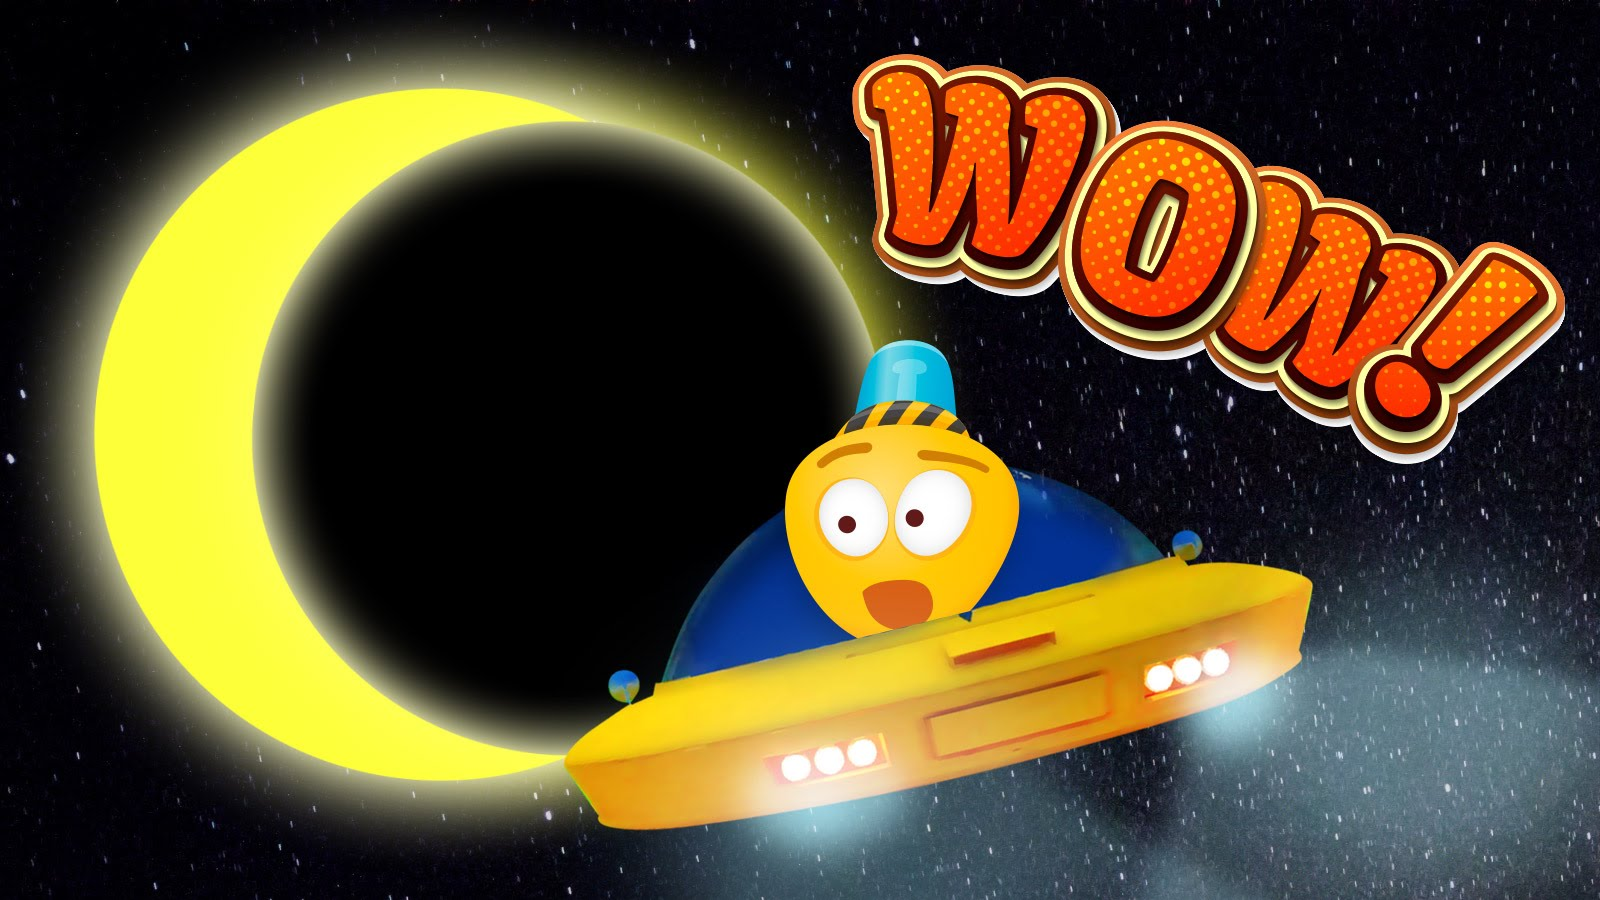 33 Solar Eclipse free clipart.